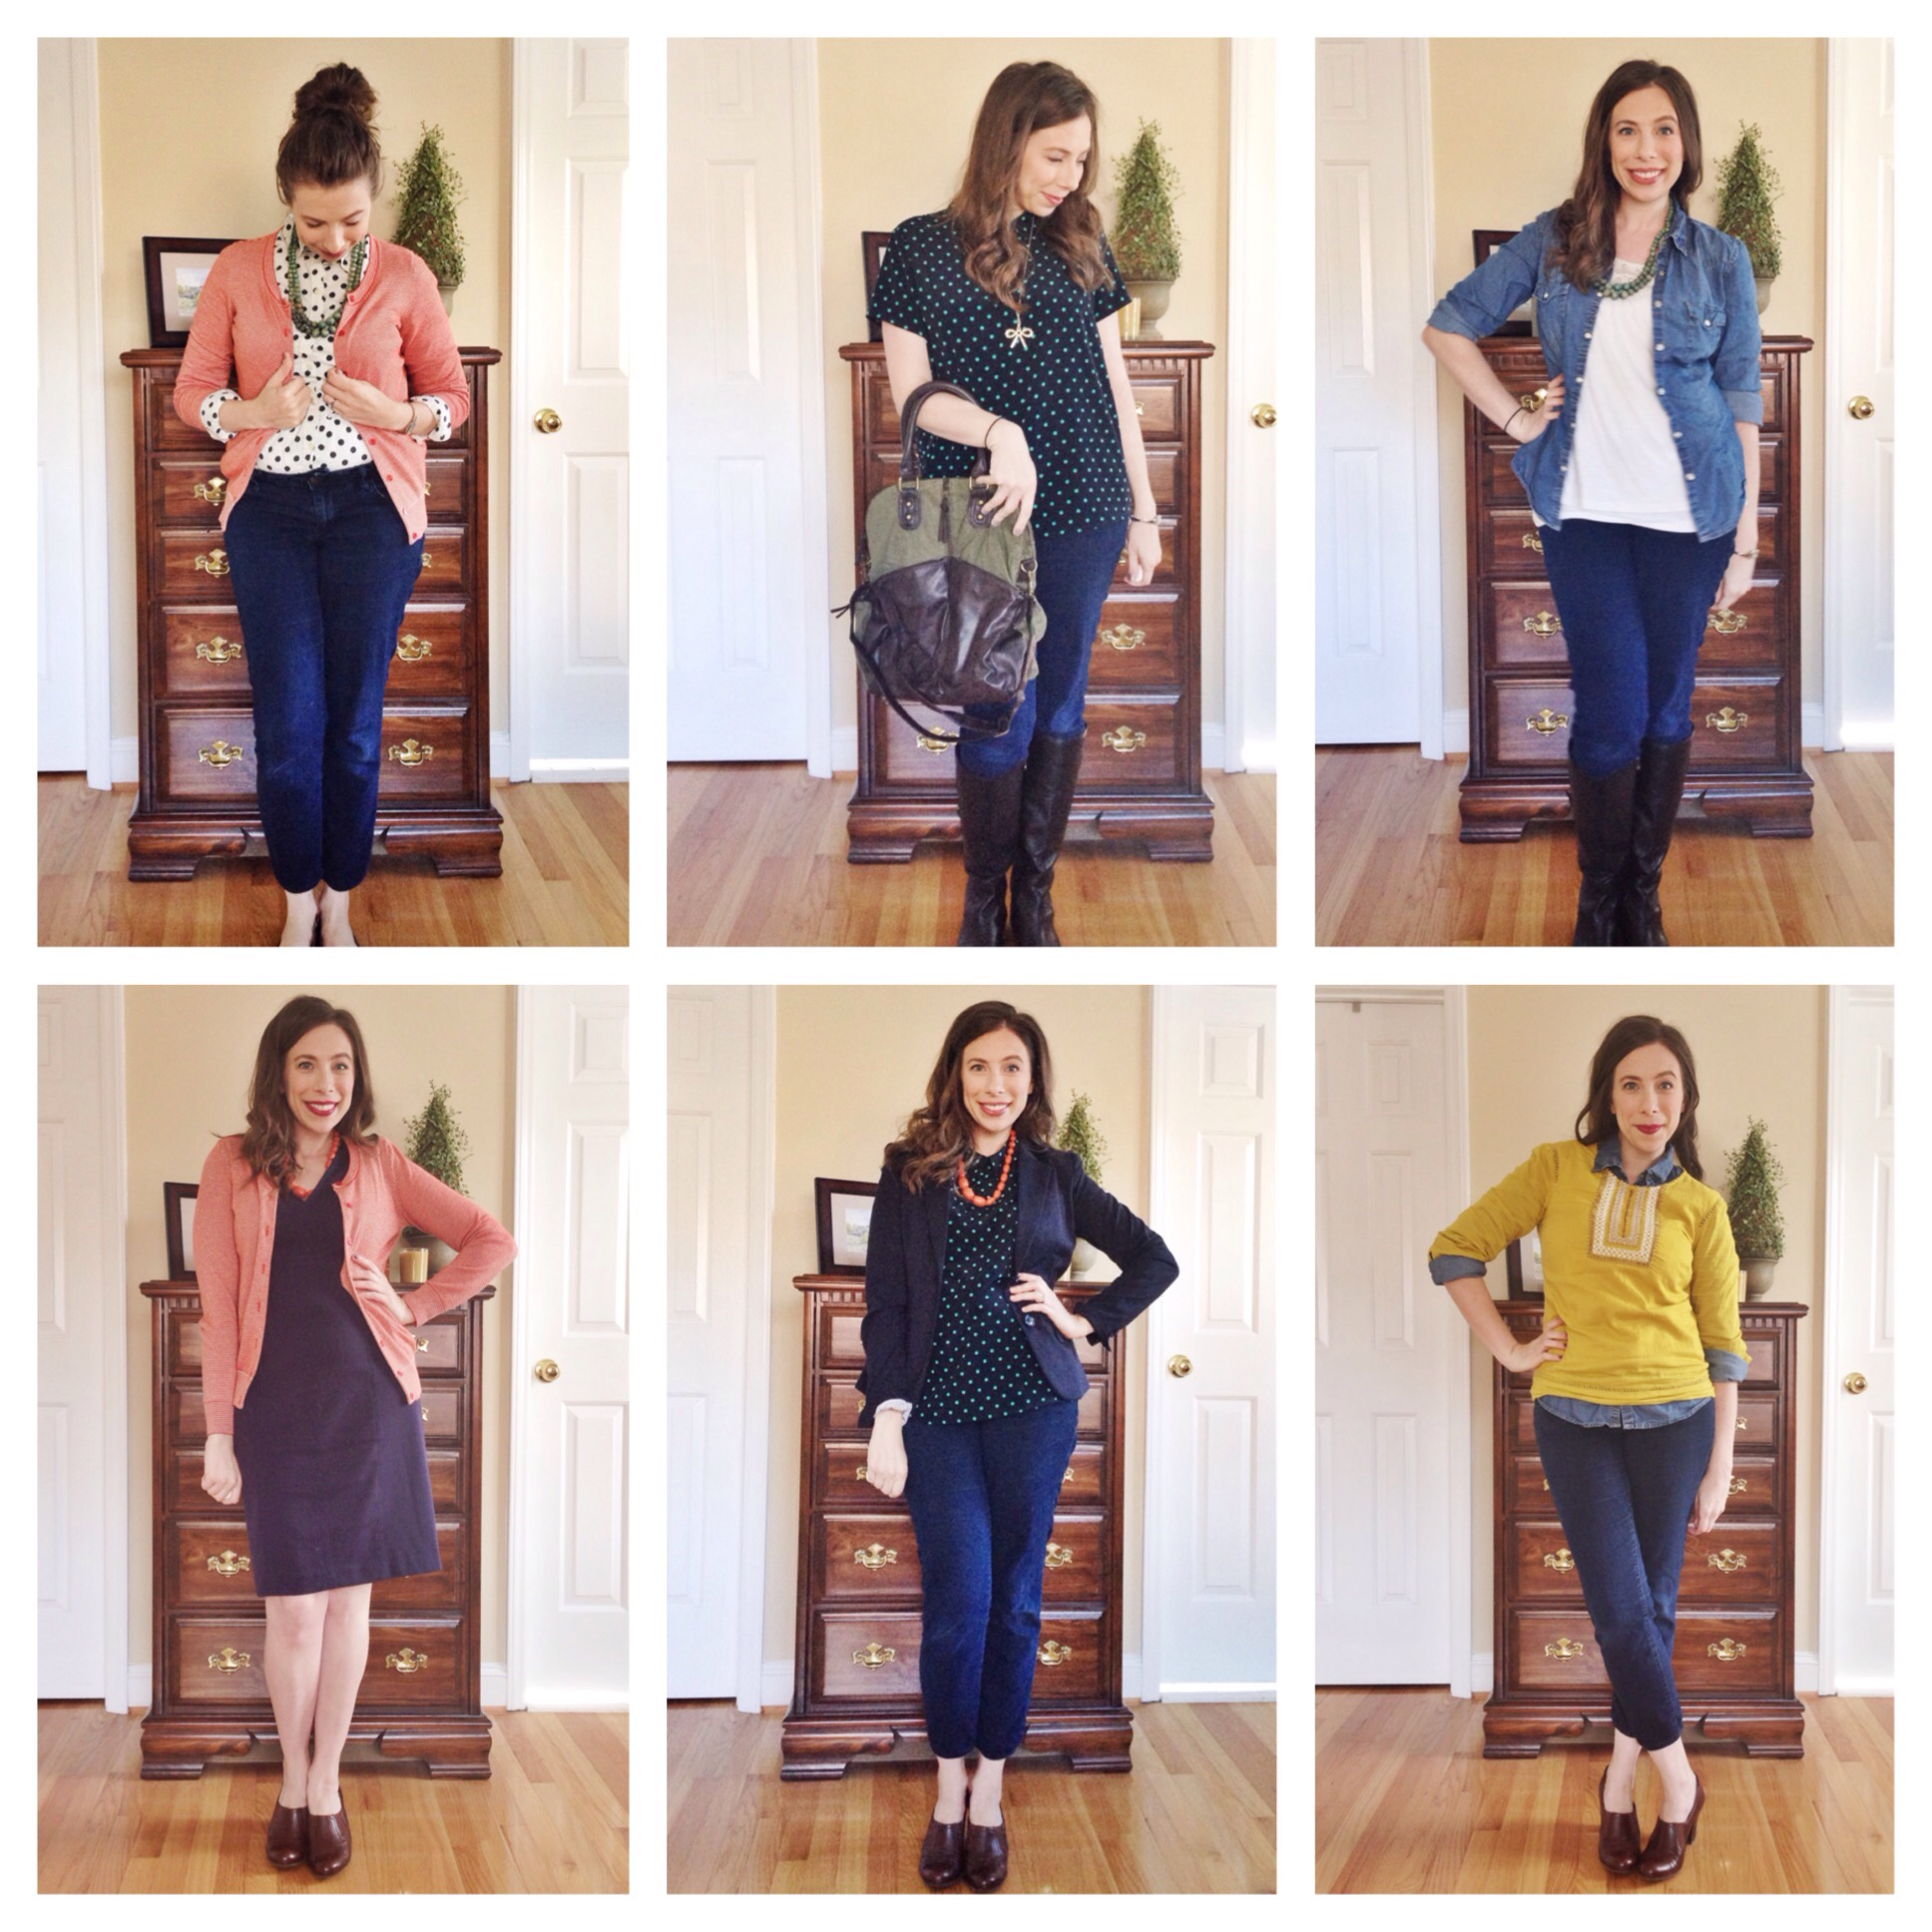 30 Outfits 30 Days Style Challenge Day 19-24 on Cup of Tea